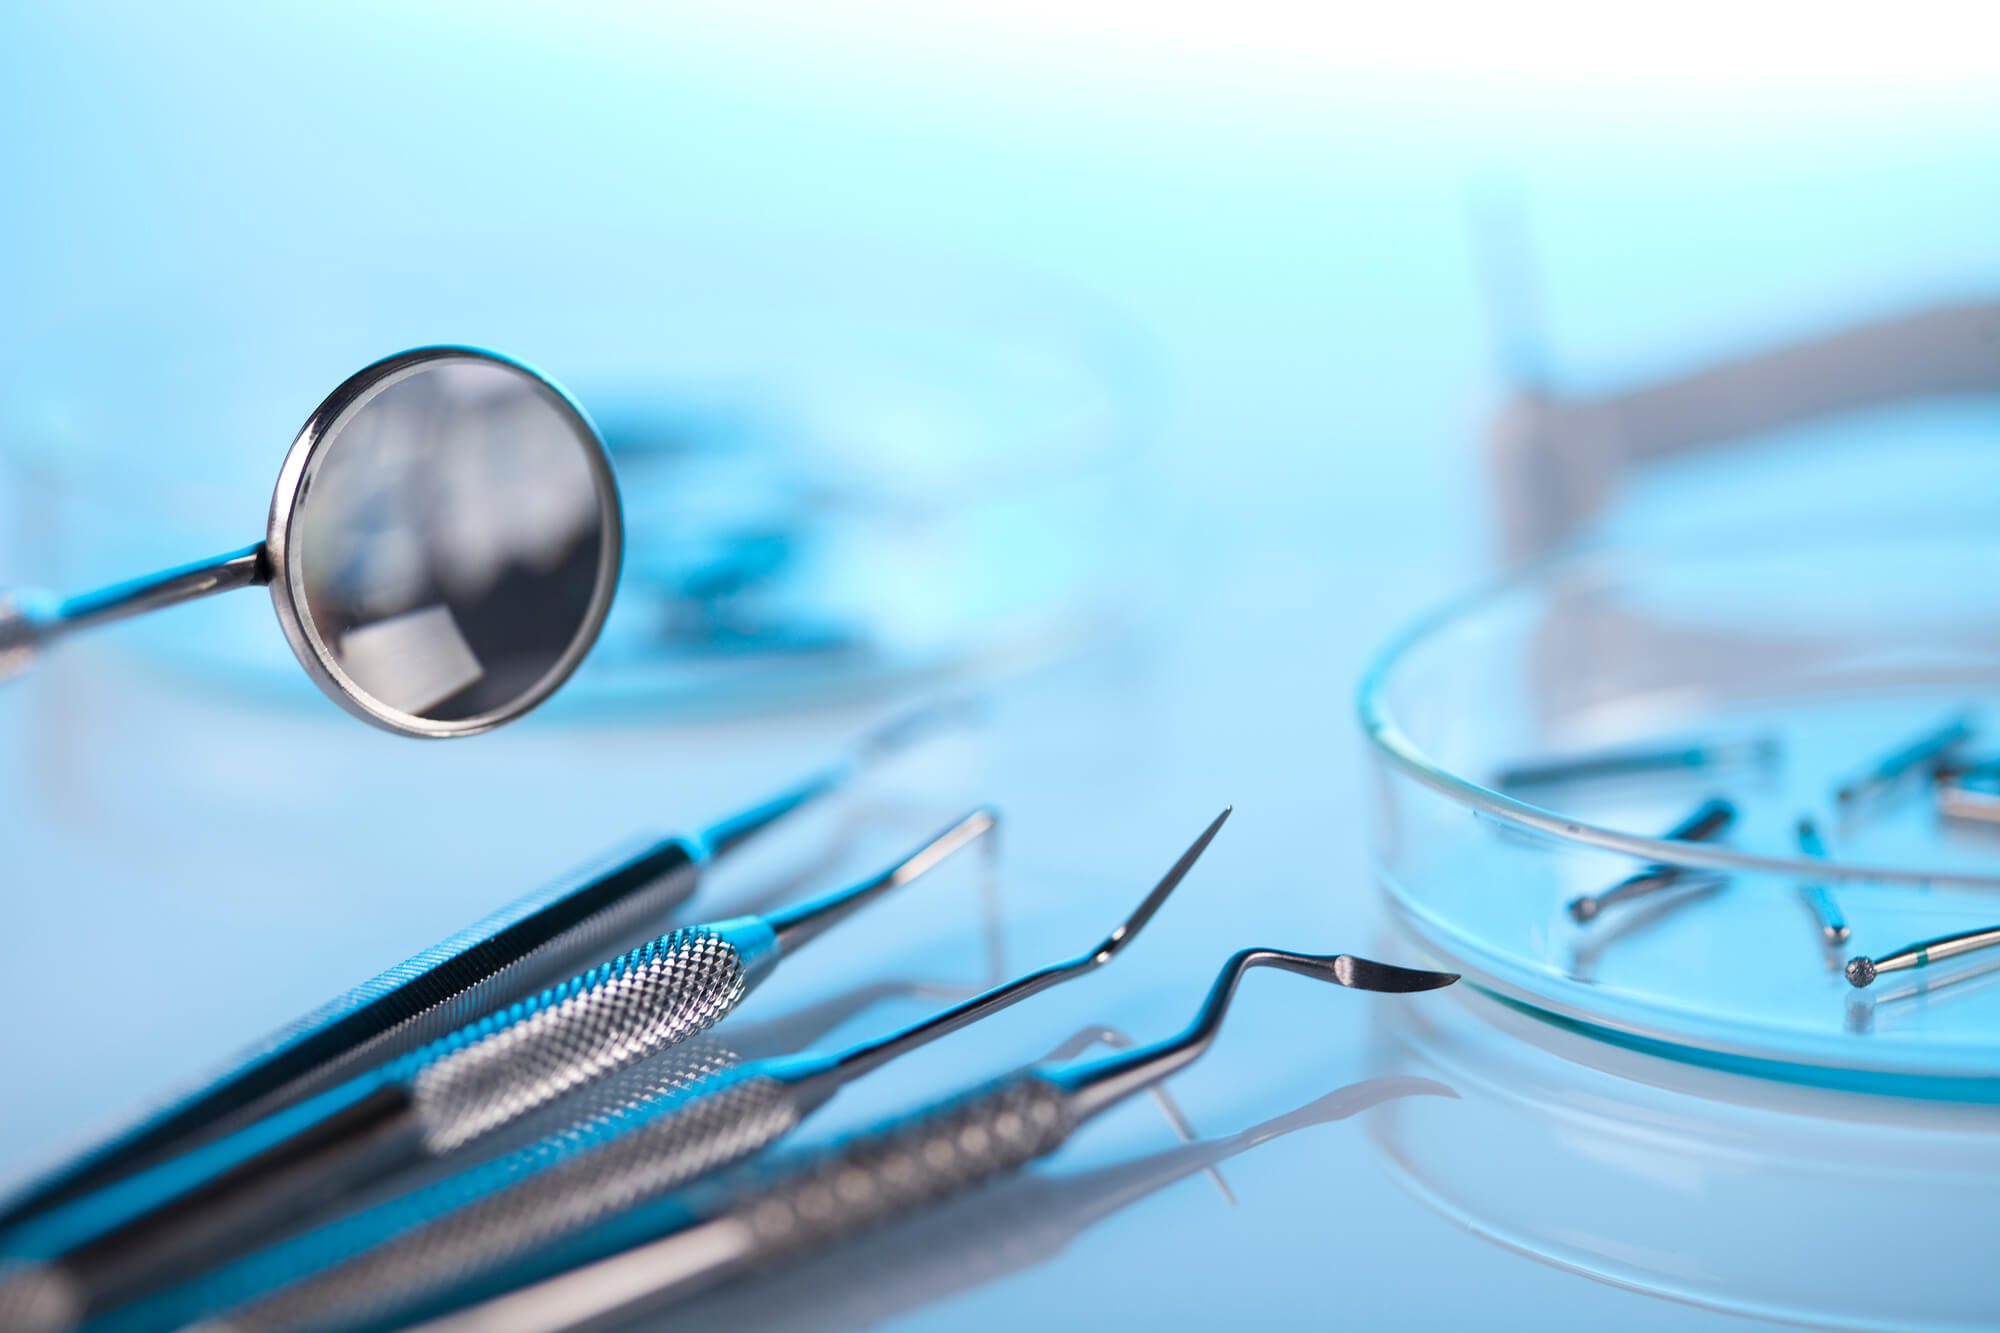 who offers the best dental implants tamiami?